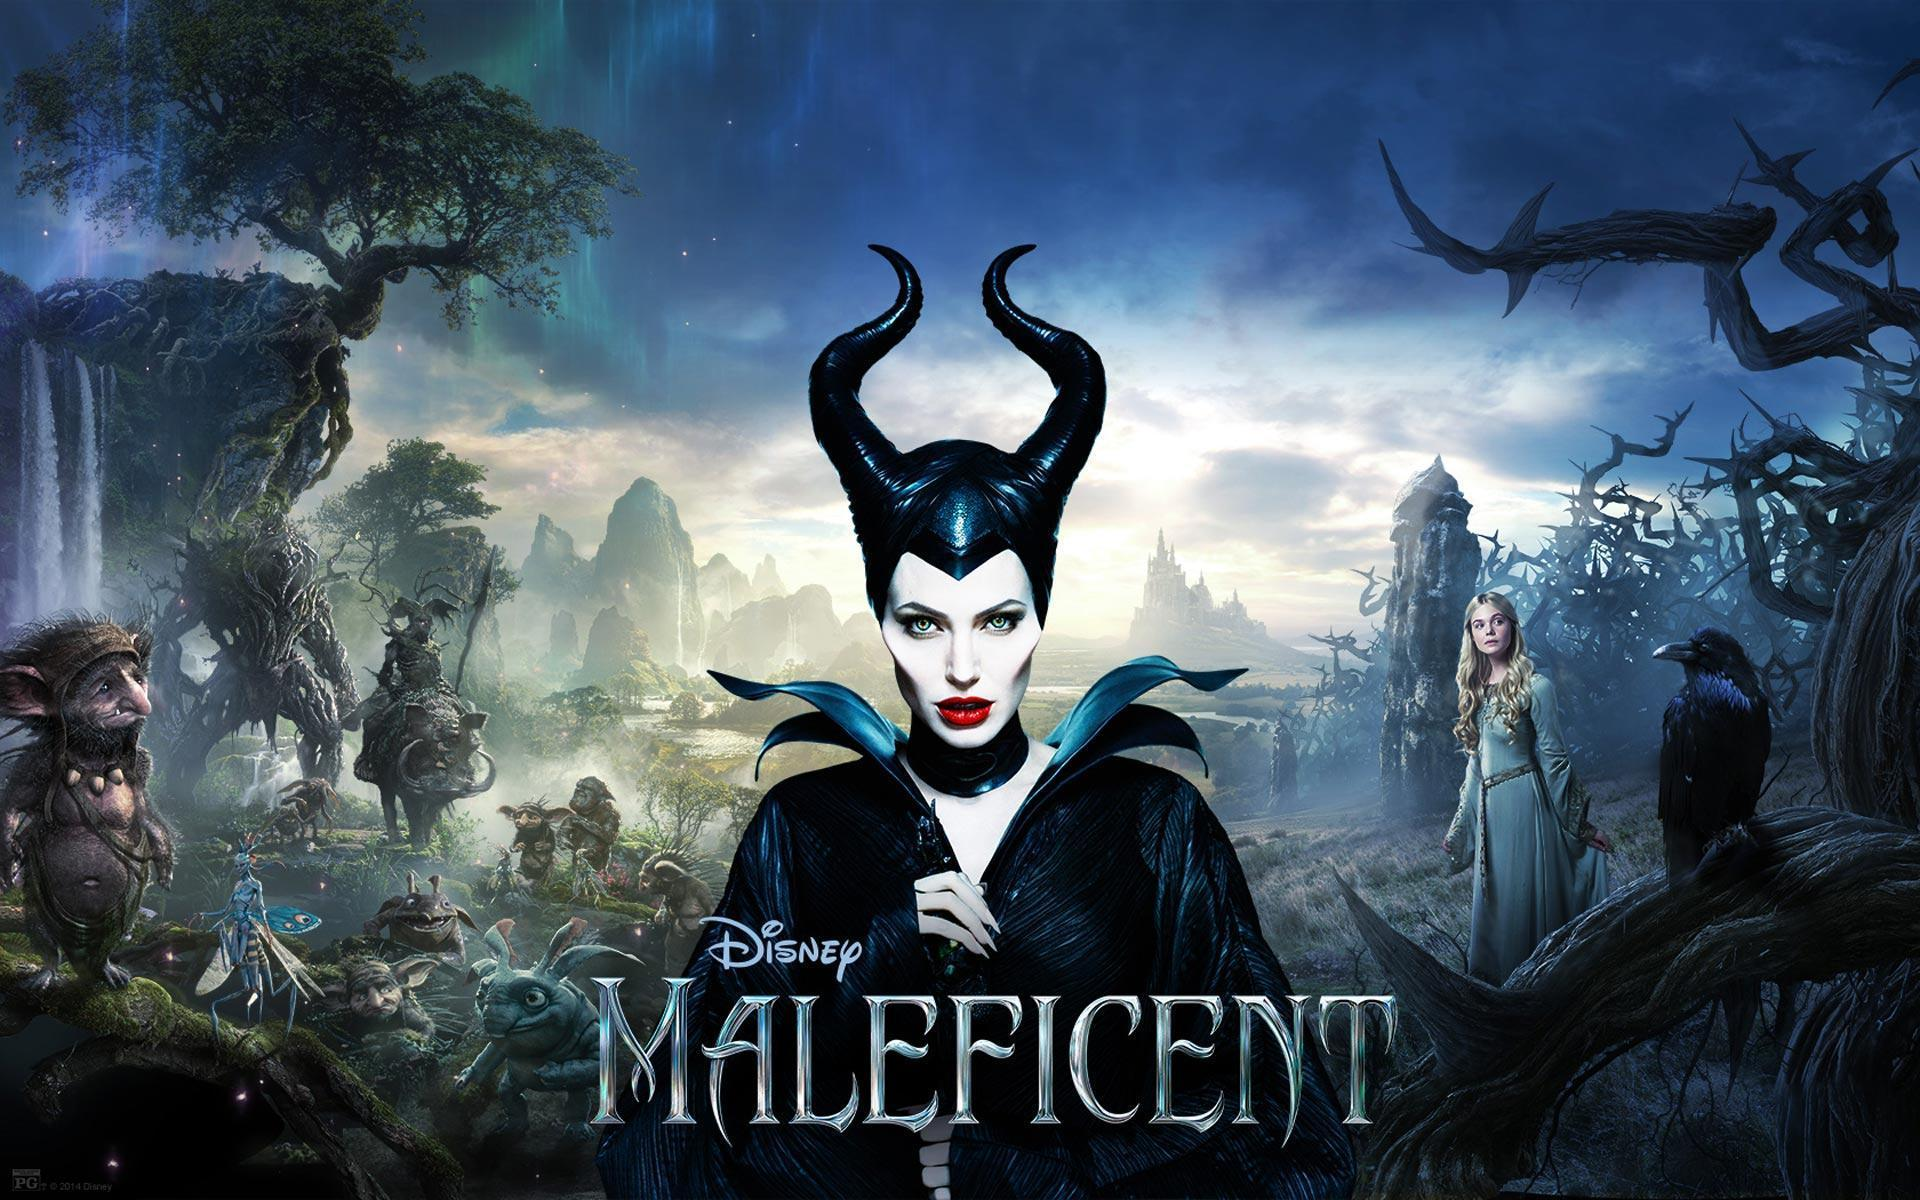 Maleficent Wallpapers, Maleficent Wallpapers for Windows and Mac